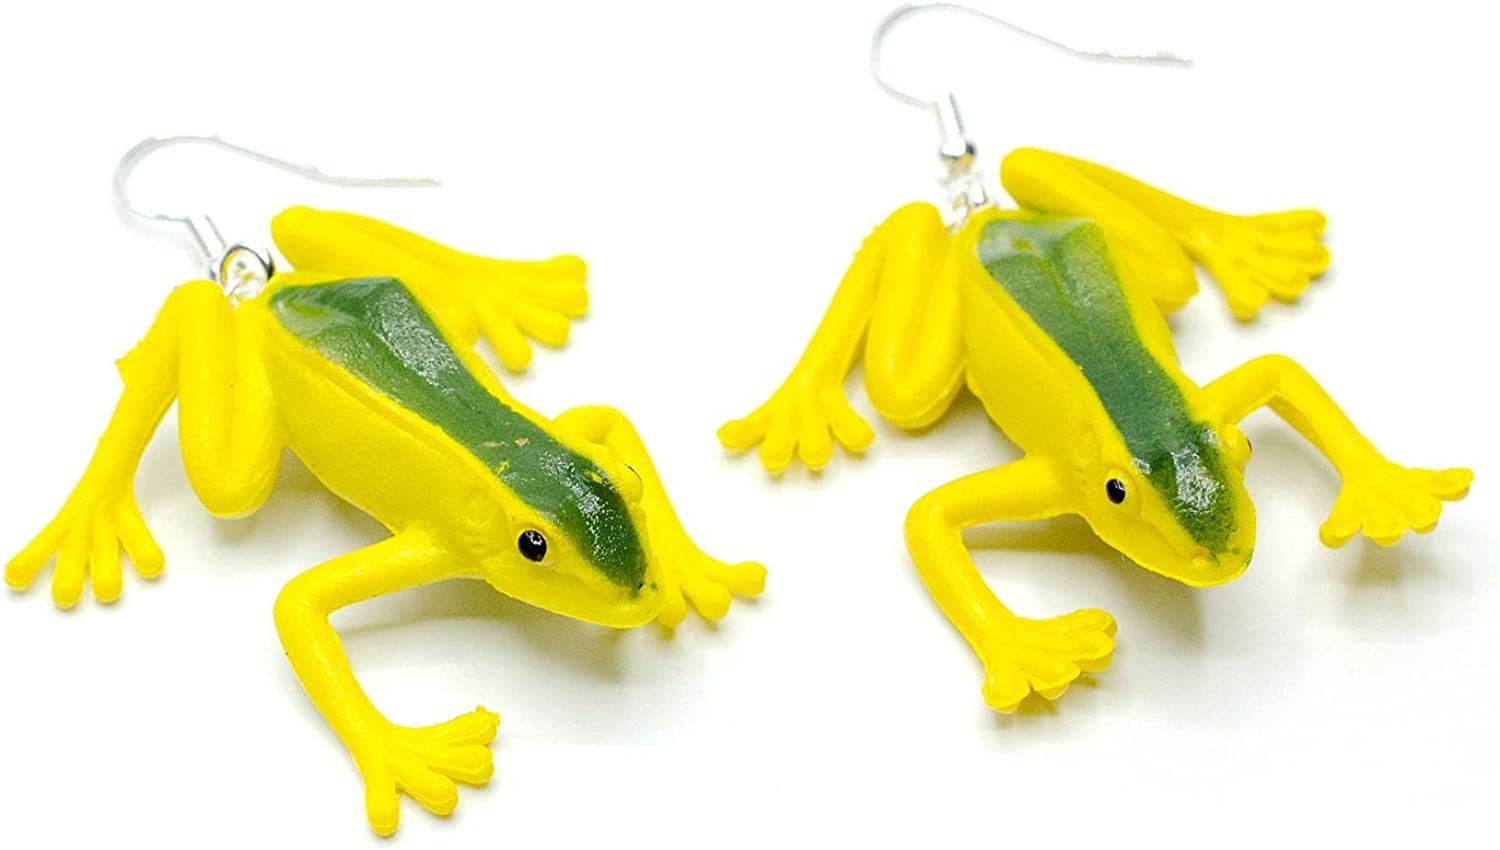 Frog High quality Max 54% OFF Earrings Miniblings Rubber Amazonas Poison Yellow Dart Tree